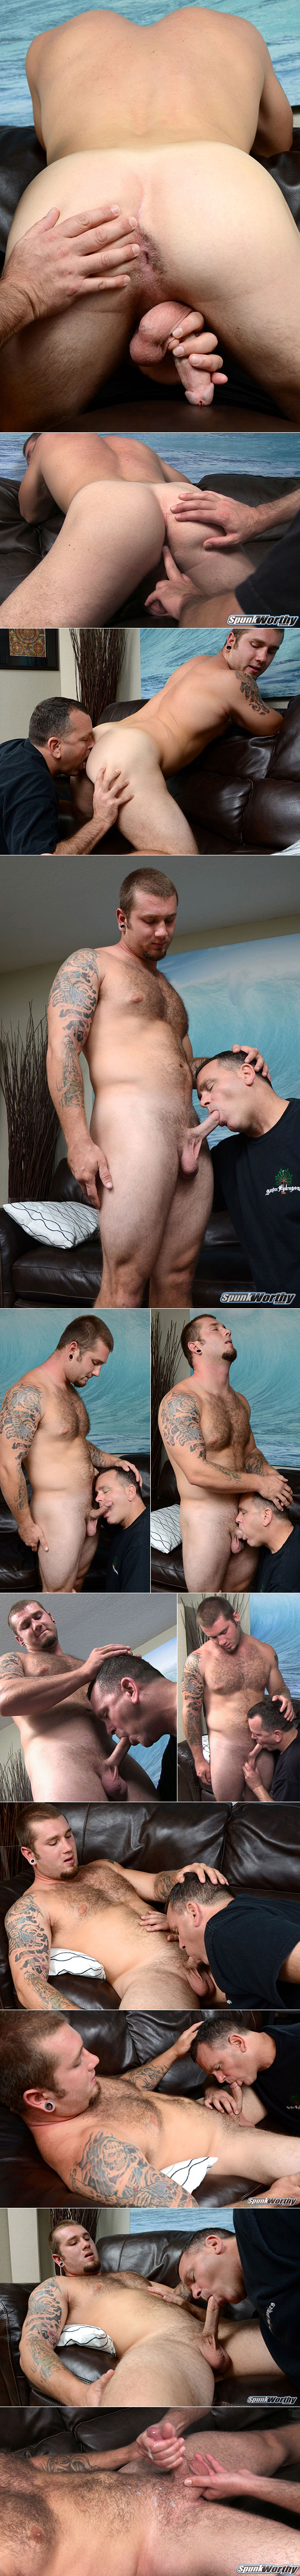 SpunkWorthy: Preston gets serviced